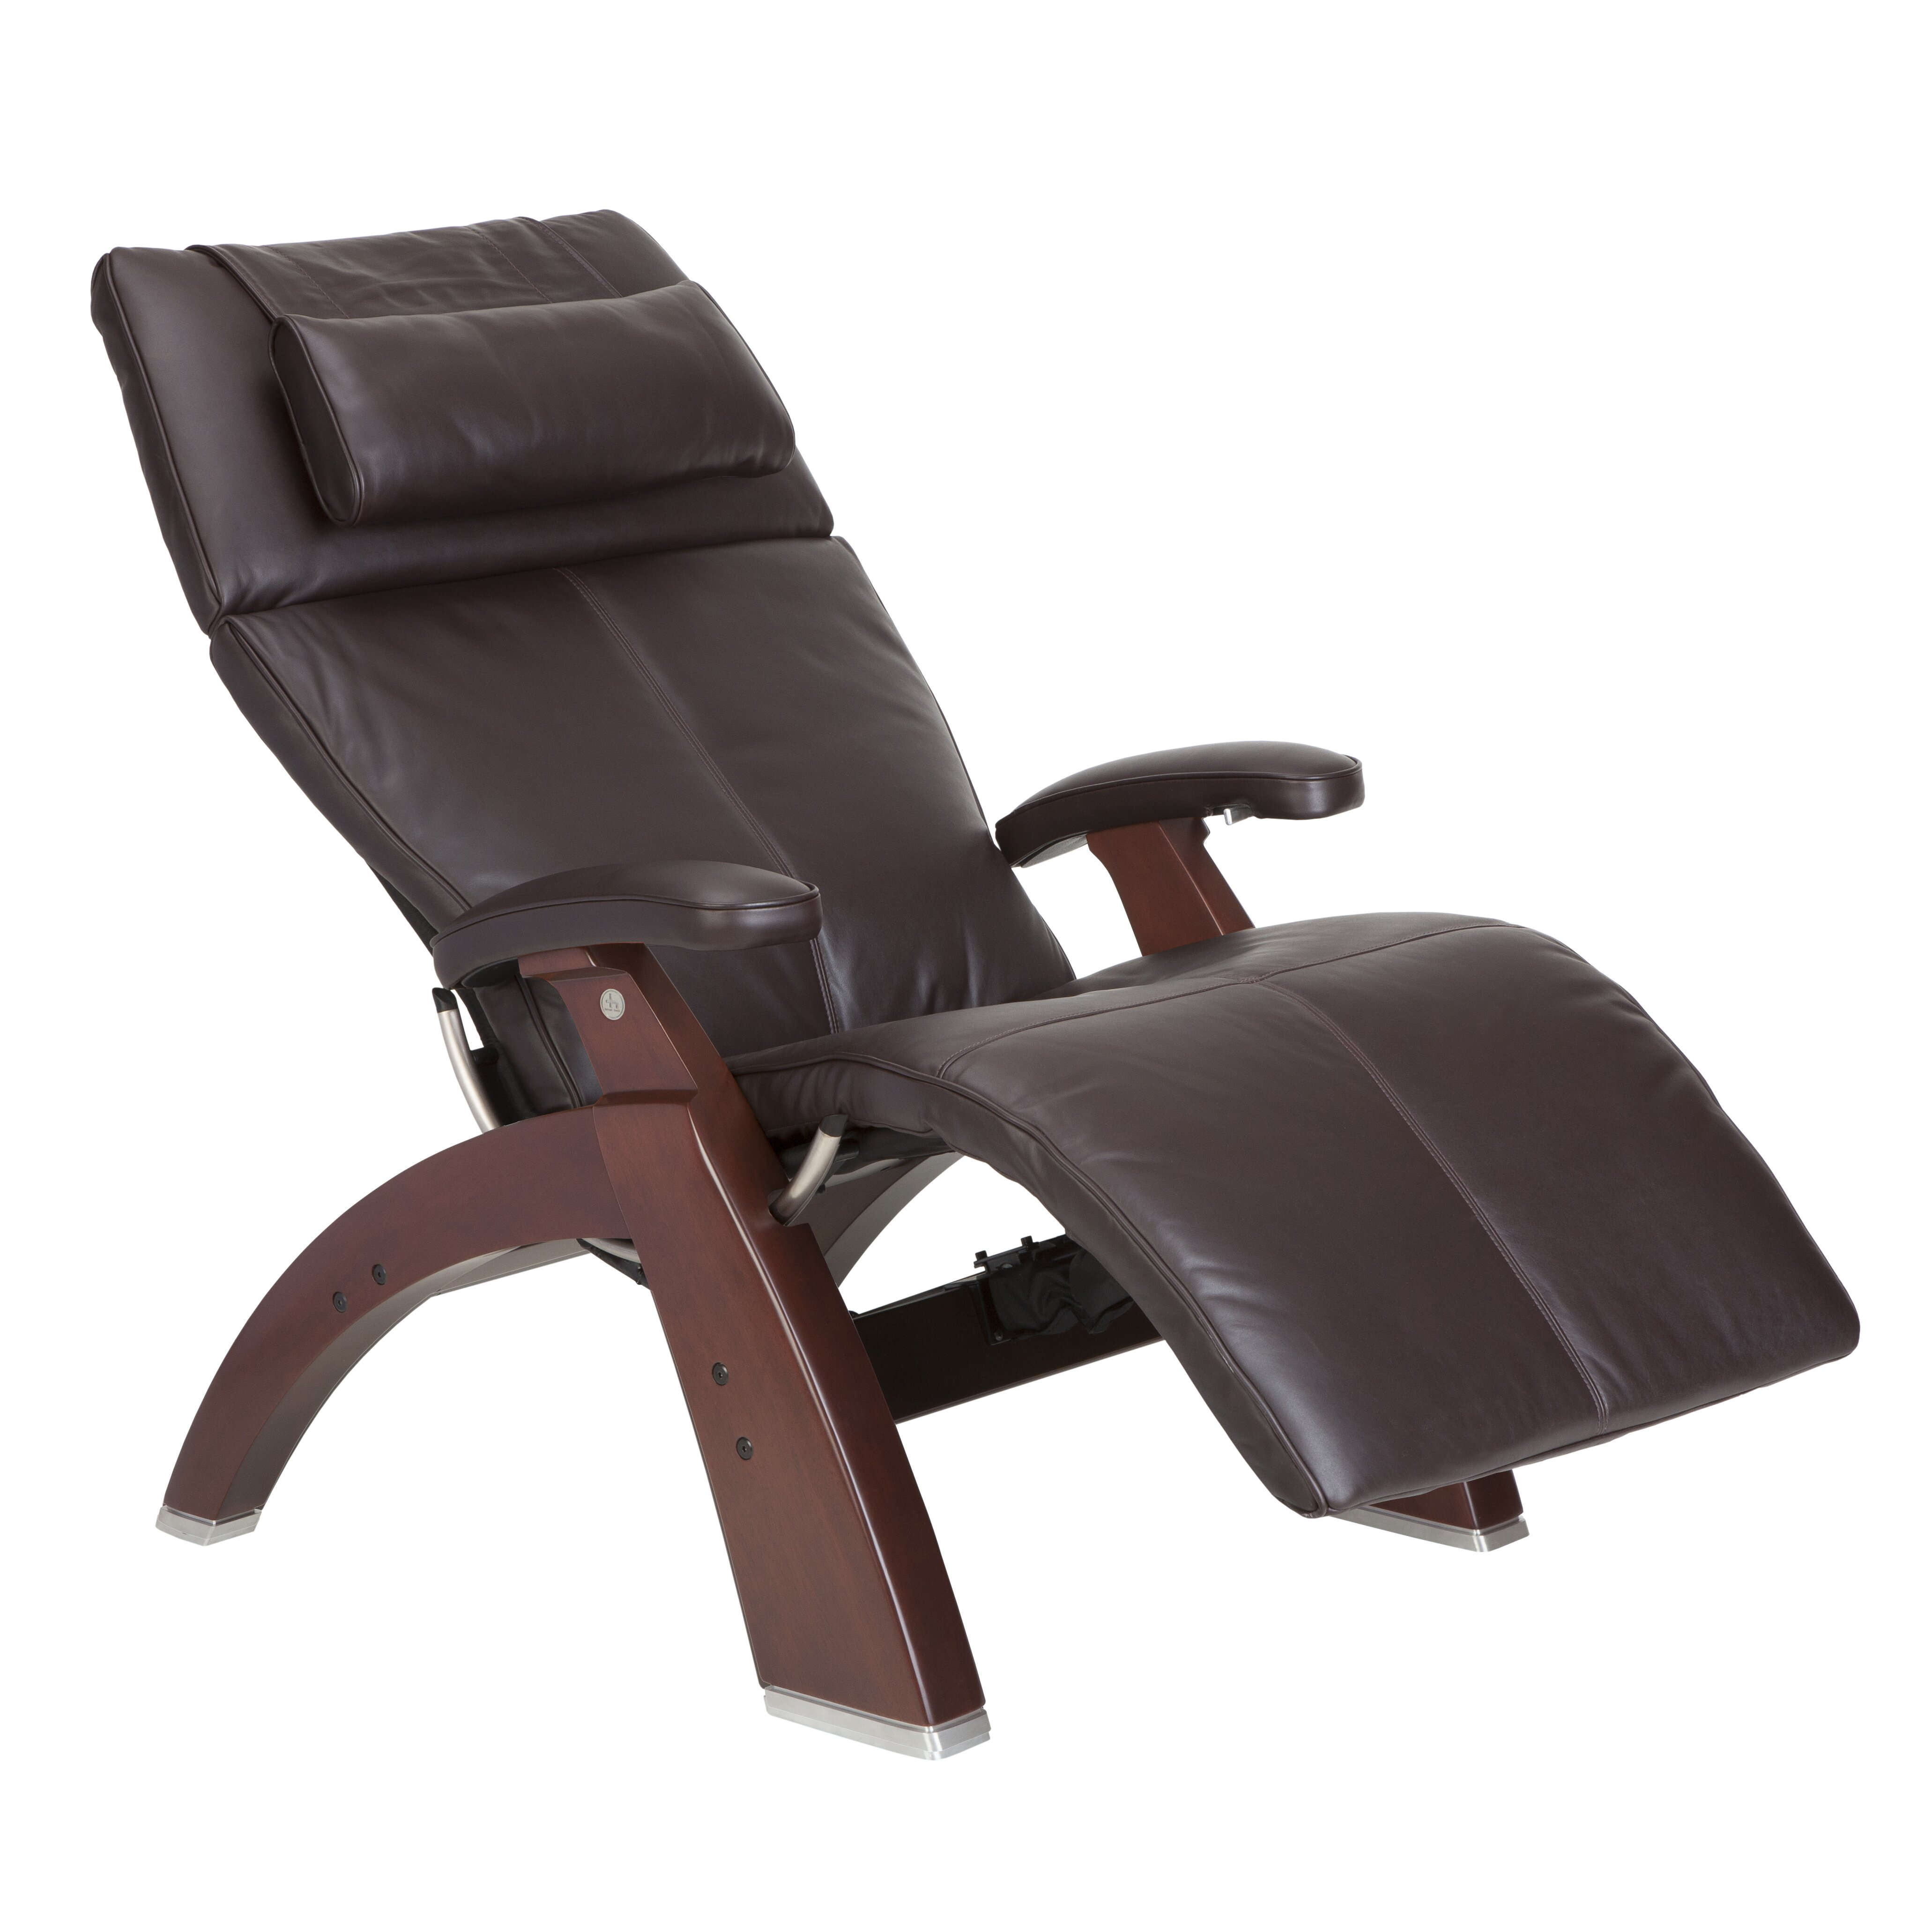 Human touch perfect chair pc 500 silhouette leather zero - Zero gravity recliner chair for living room ...